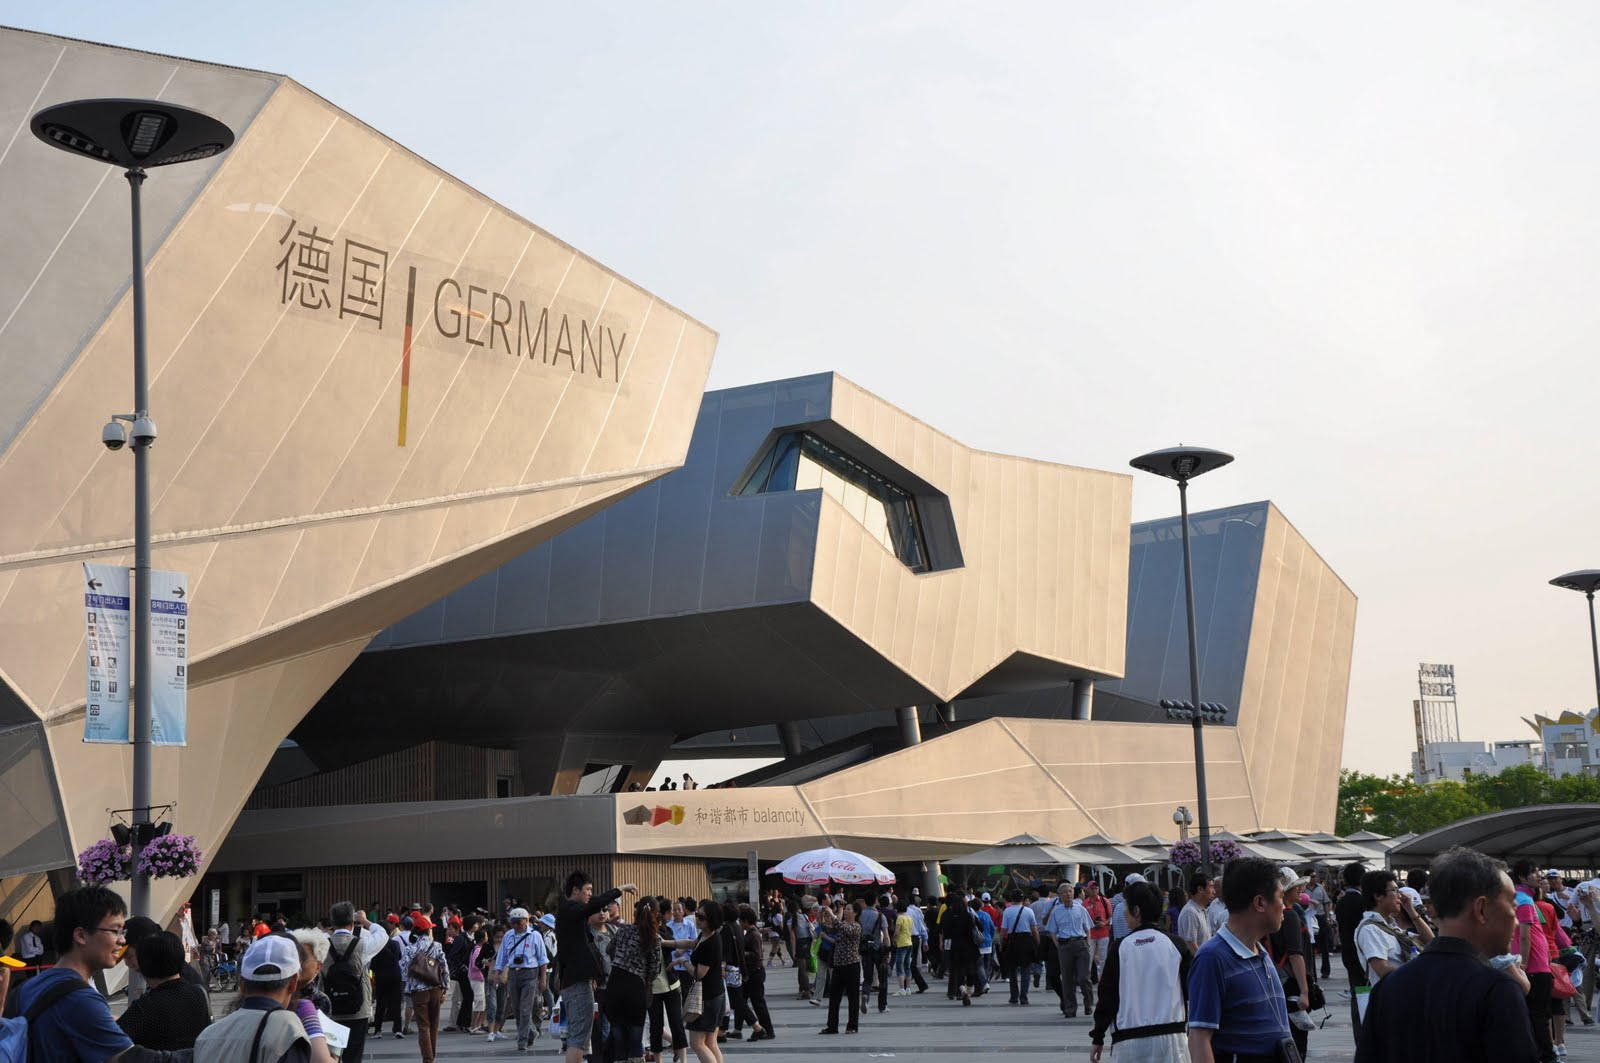 Shanghai World Expo 2010-The German Pavilion